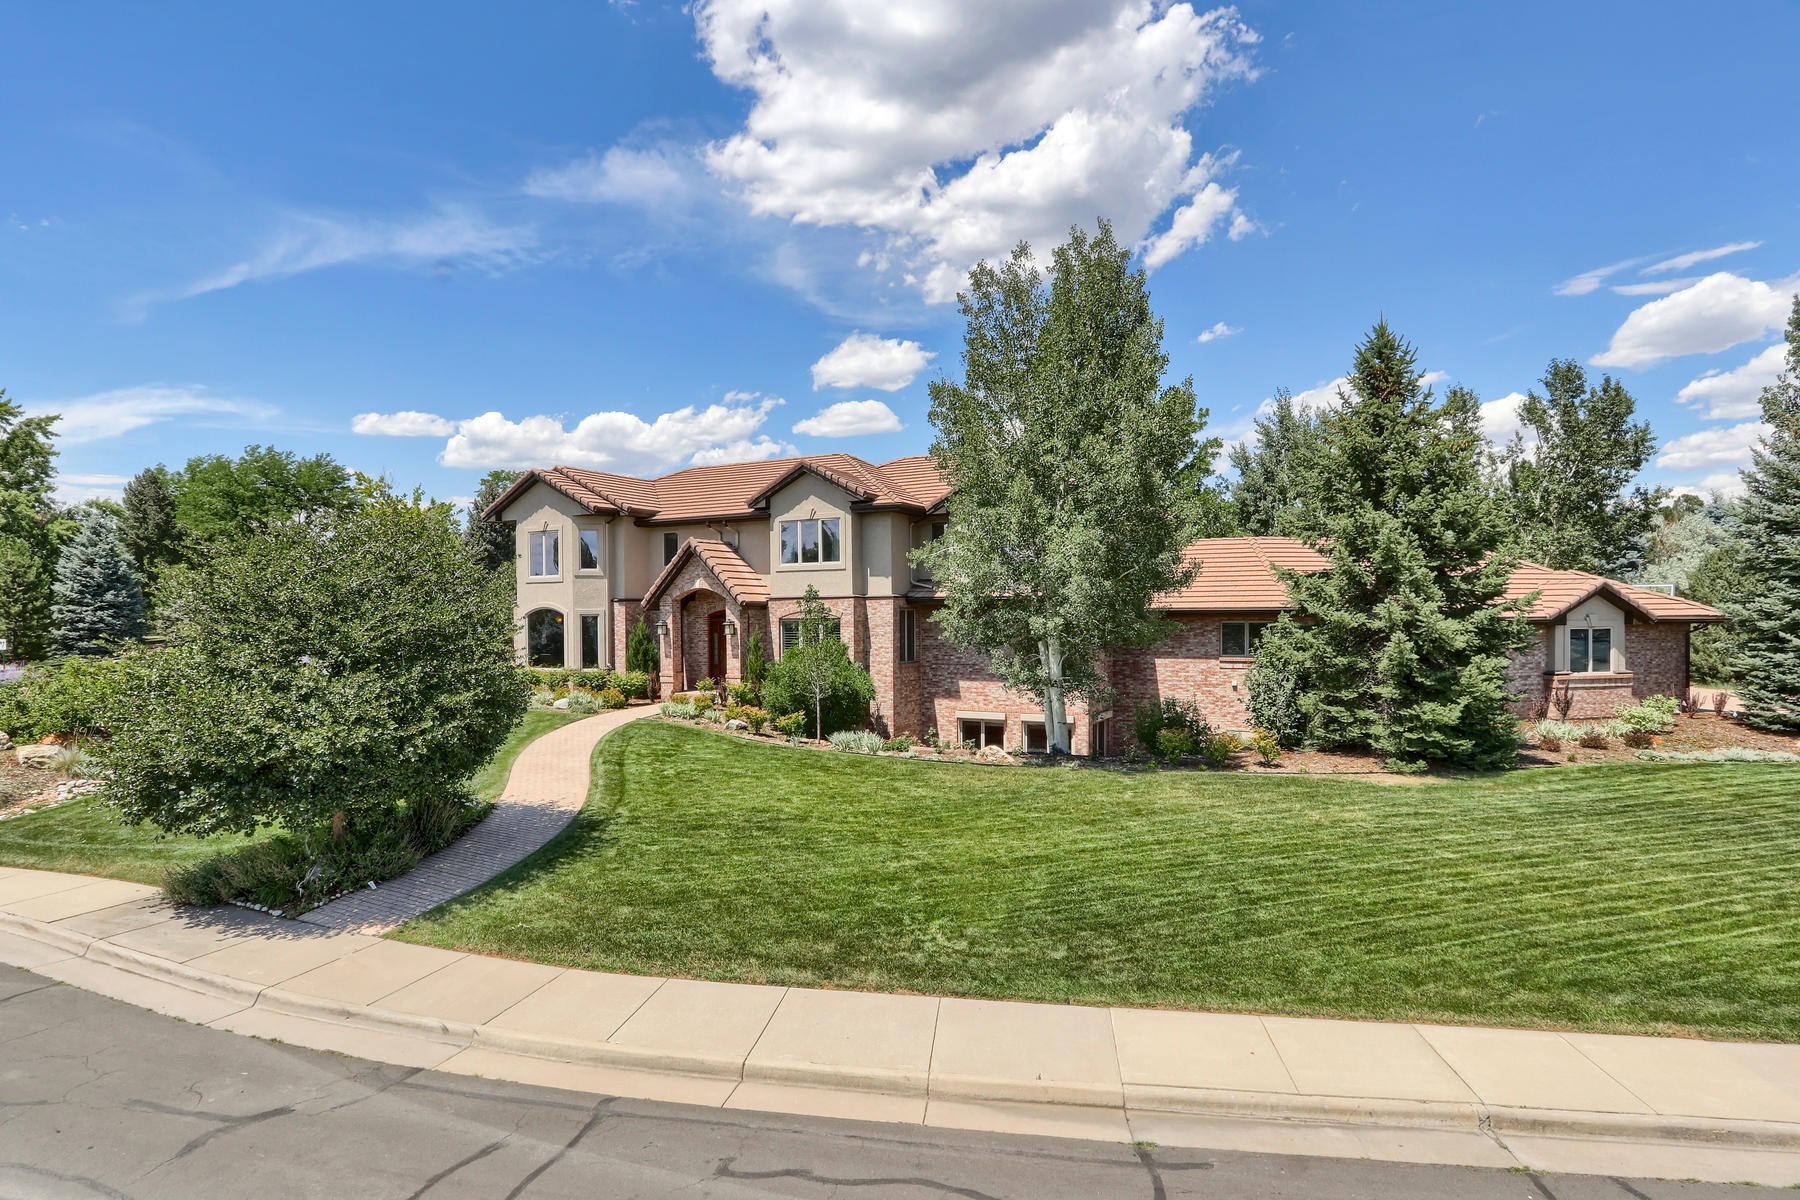 Single Family Homes for Active at Greenwood Village & Cherry Creek Schools 6505 Dorado Pl Greenwood Village, Colorado 80111 United States